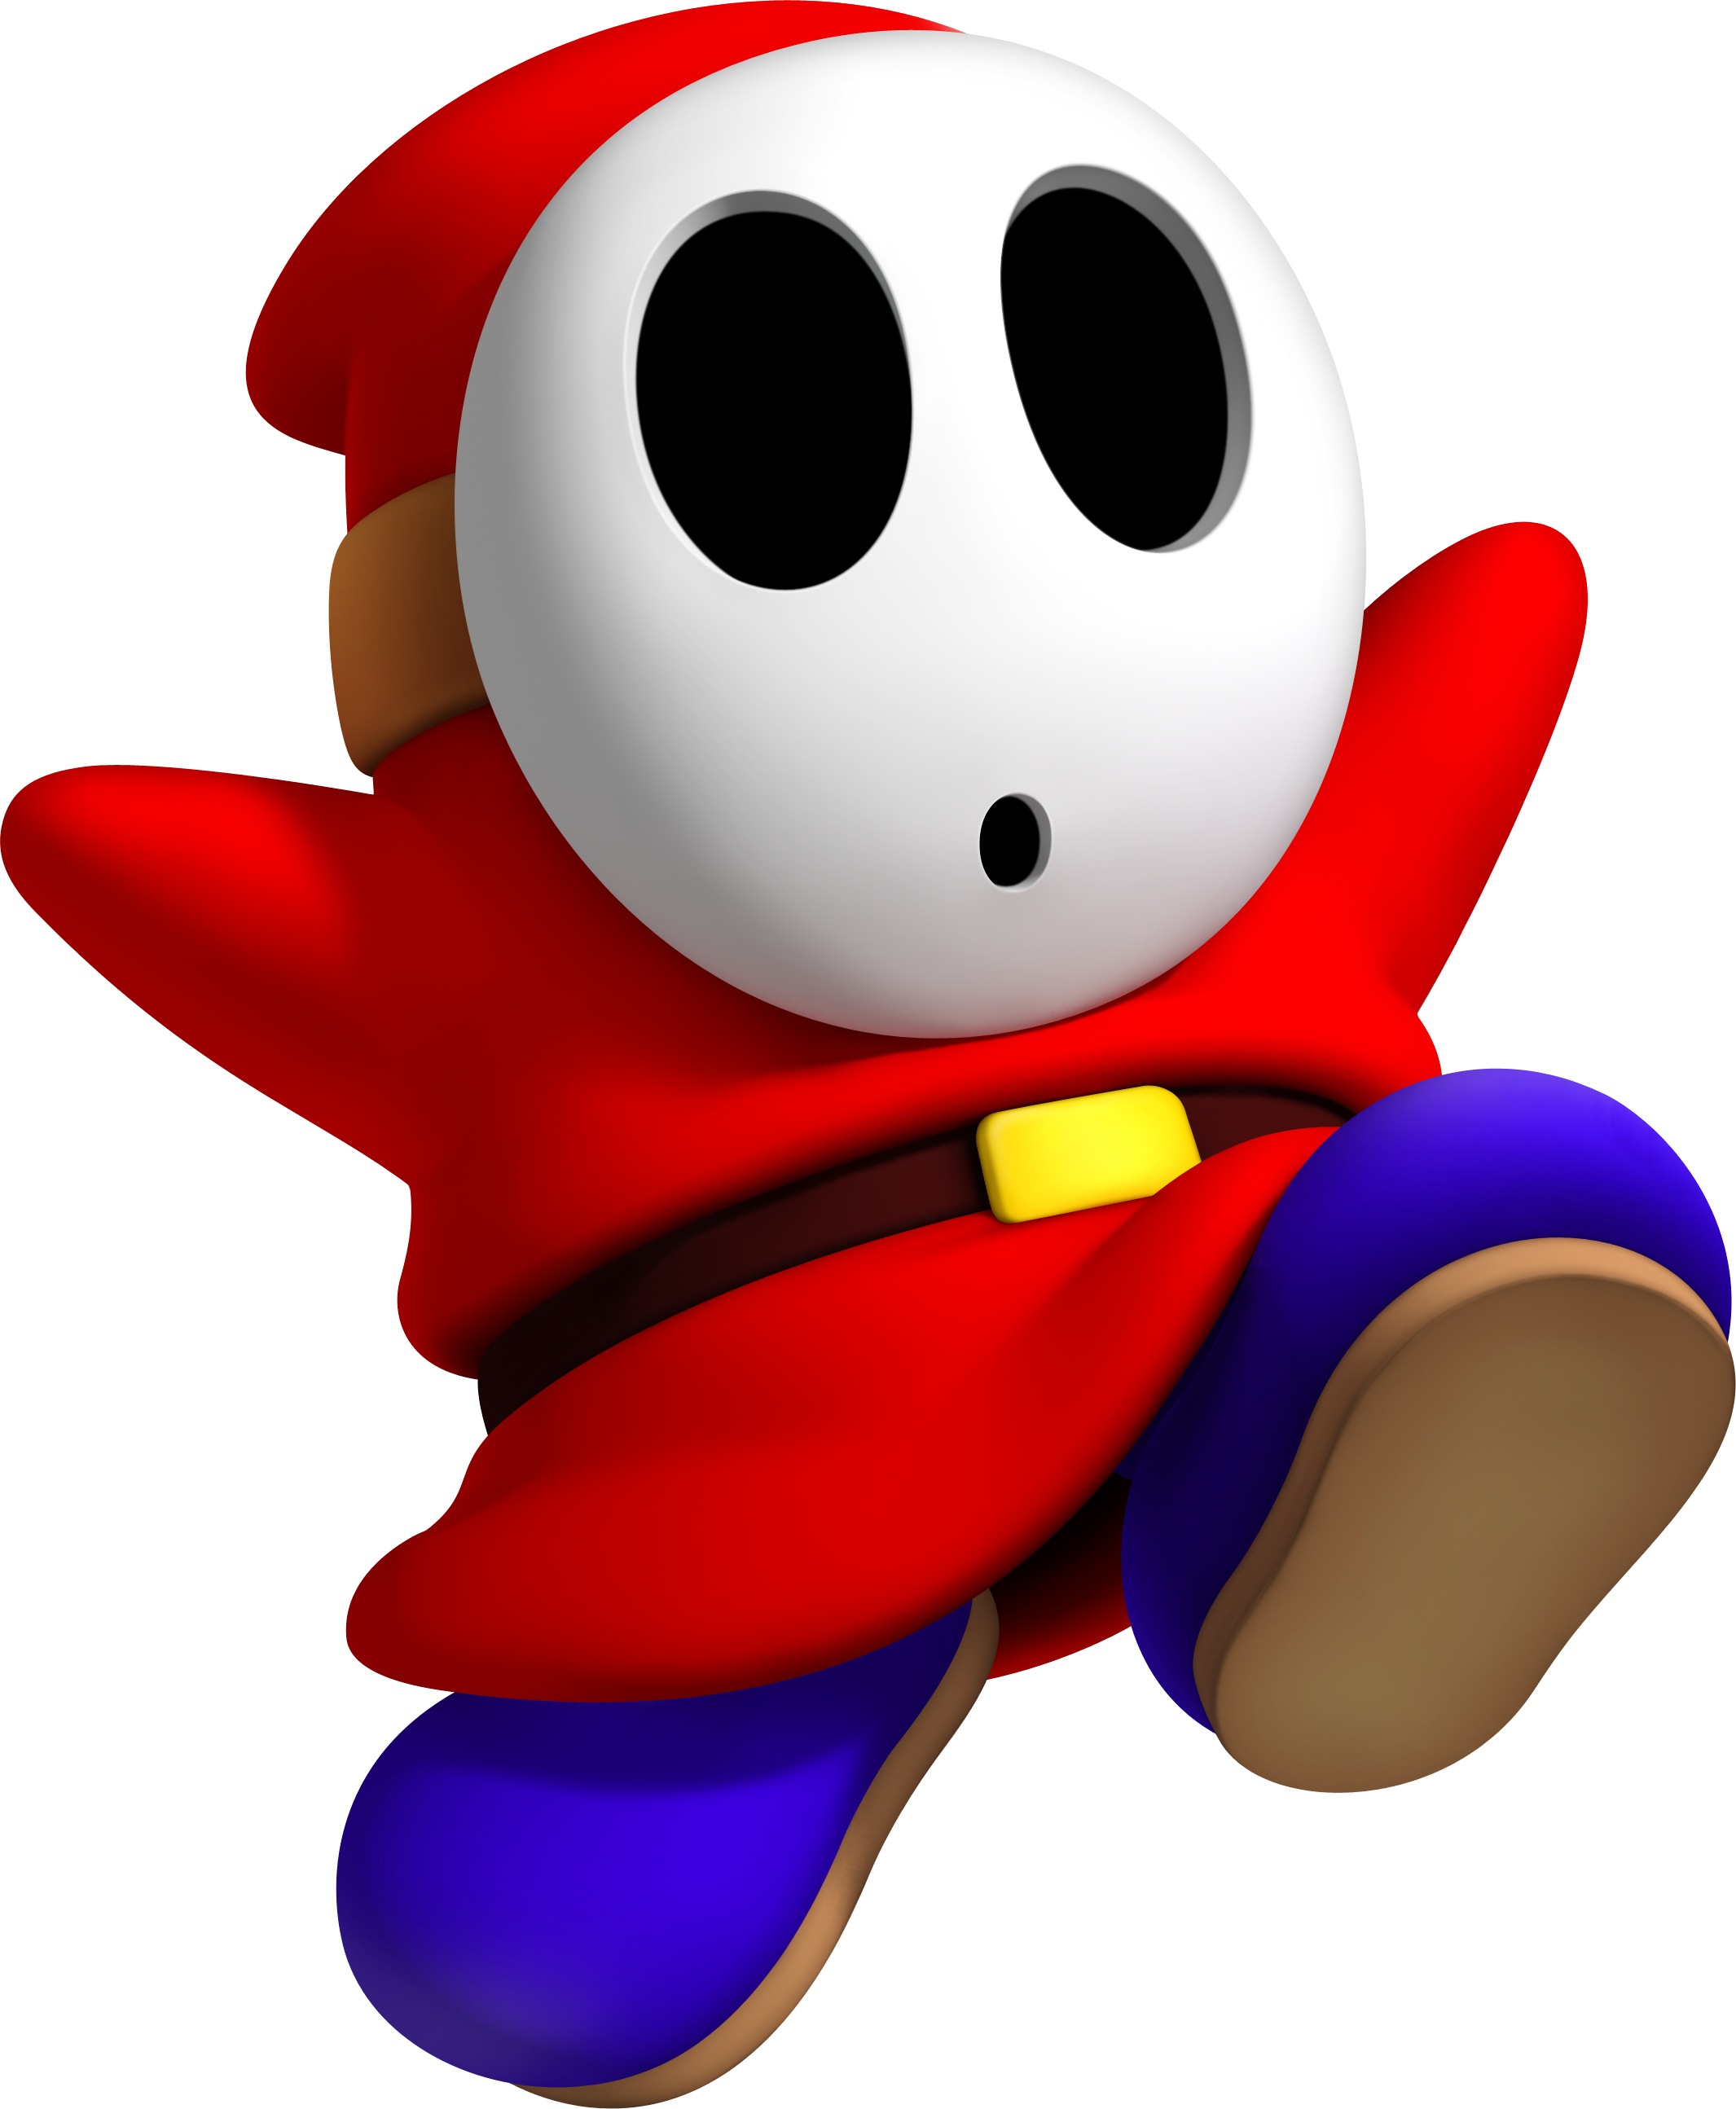 Shy Guy (species) - Fantendo, the Video Game Fanon Wiki